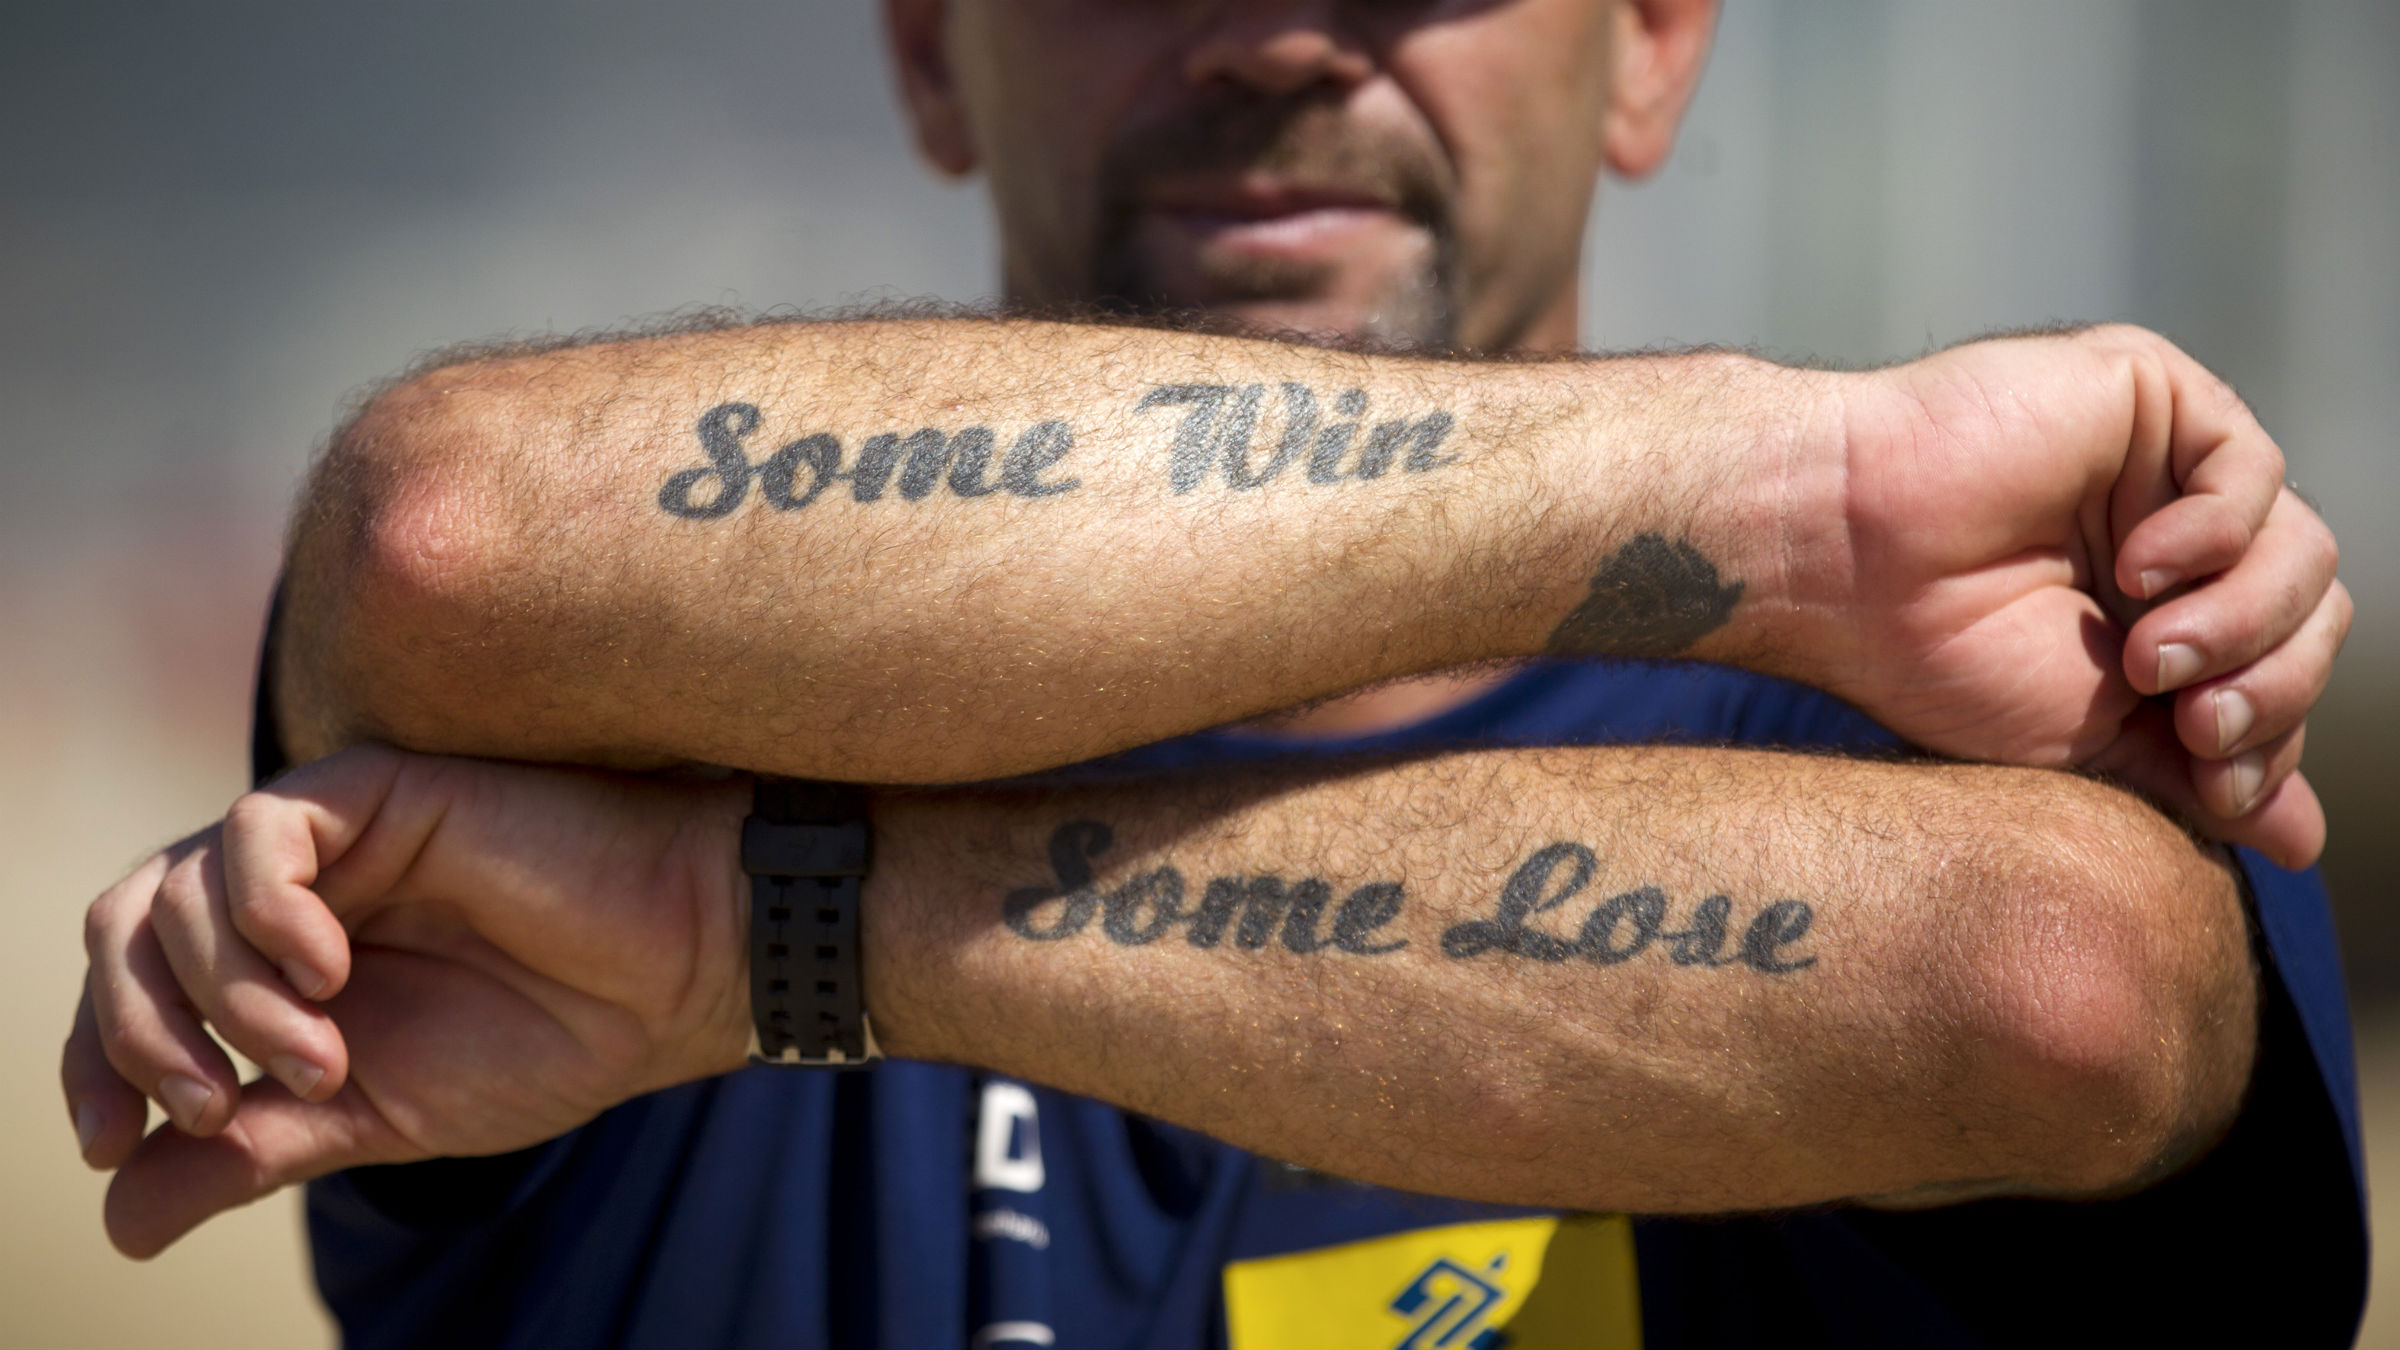 In this April 4, 2012 photo, beach volleyball trainer Abel Martinez shows his tattoos on Ipanema beach in Rio de Janeiro, Brazil. Martinez trains athletes Talita Antunes and Maria Elisa Antonelli, one of the favorite teams to compete at the London 2012 Olympic games women's beach volley event.